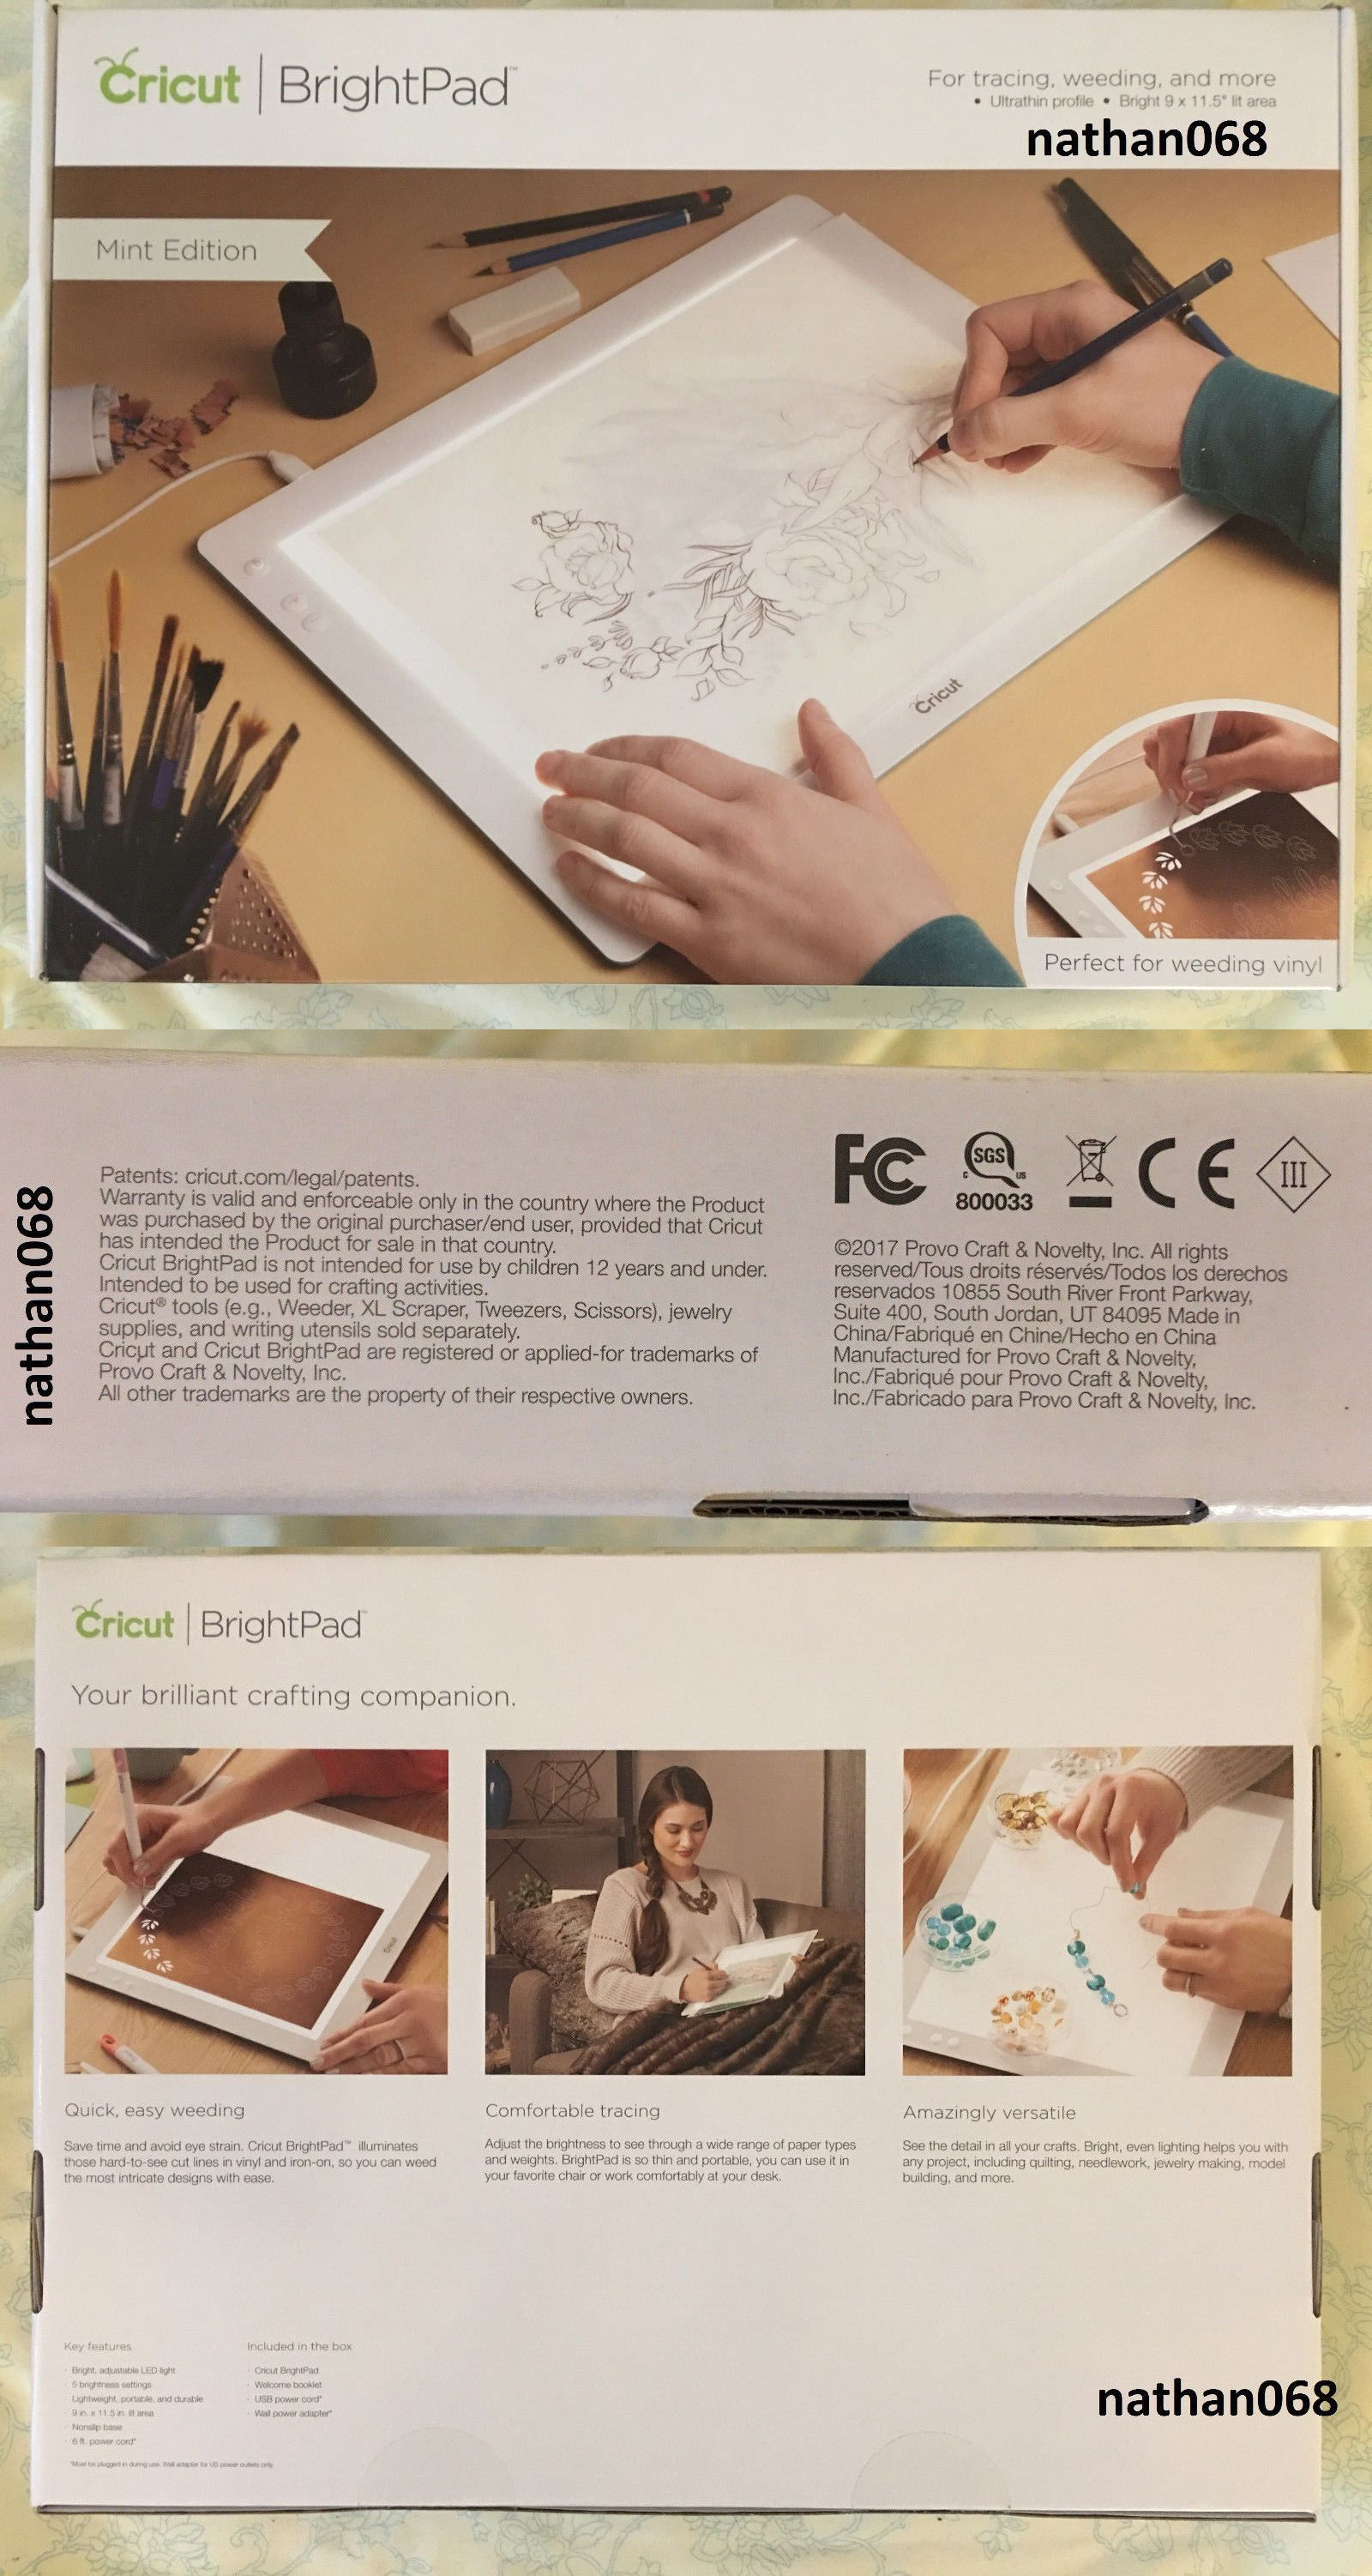 Scrapbooking And Paper Crafts 11788 New Cricut Bright Pad With Adjustable Led Light Free Shipping Buy It Now Only Cricut Paper Crafts Cricut Brightpad